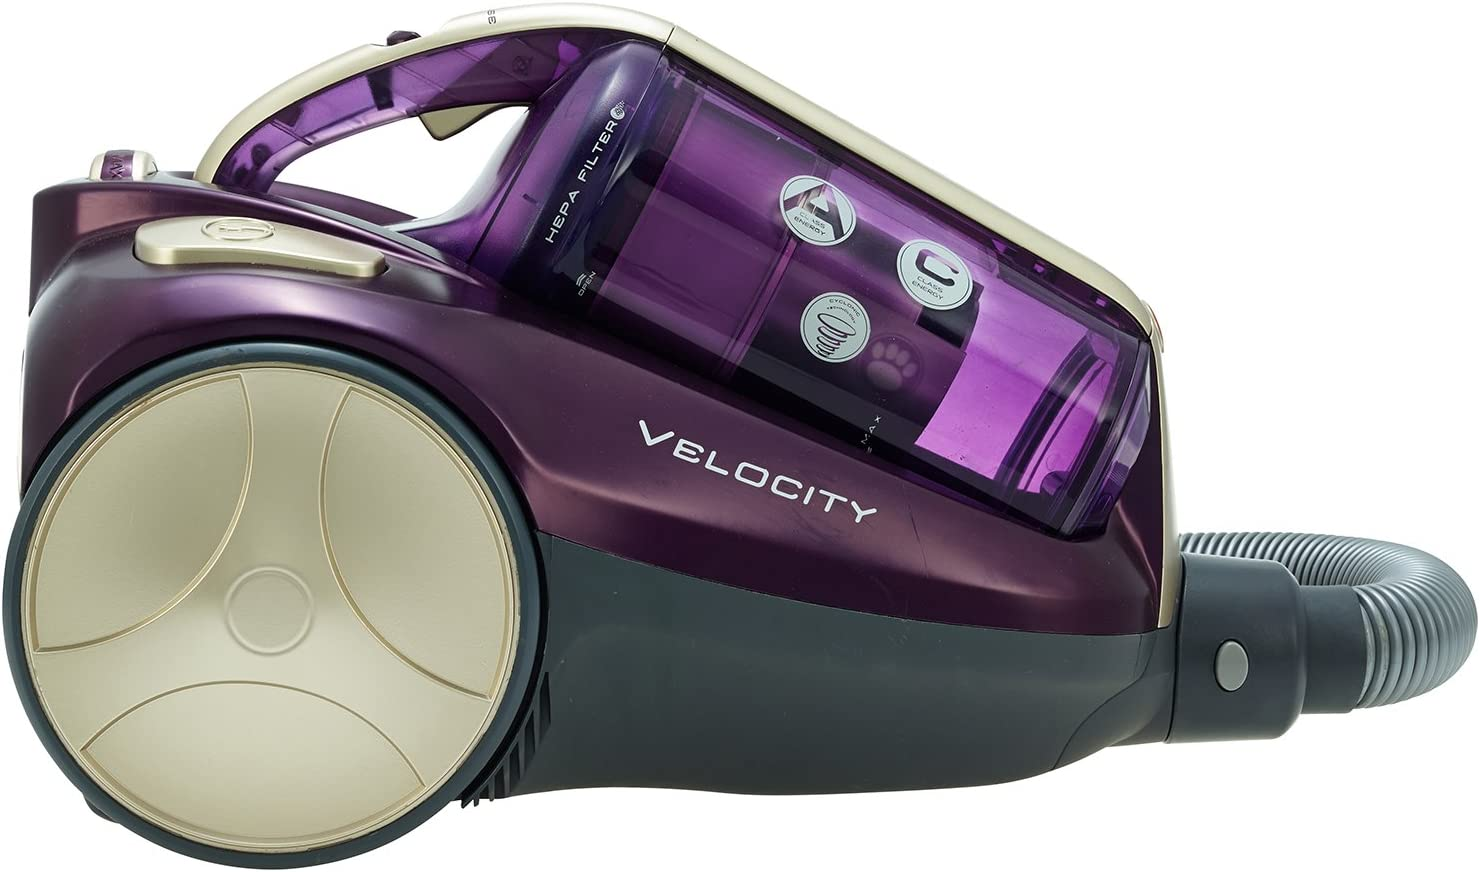 Hoover Velocity Bagless Cylinder Vacuum Cleaner, RU80VE11, Variable Suction Power, Easy Empty, Cyclonic Purple